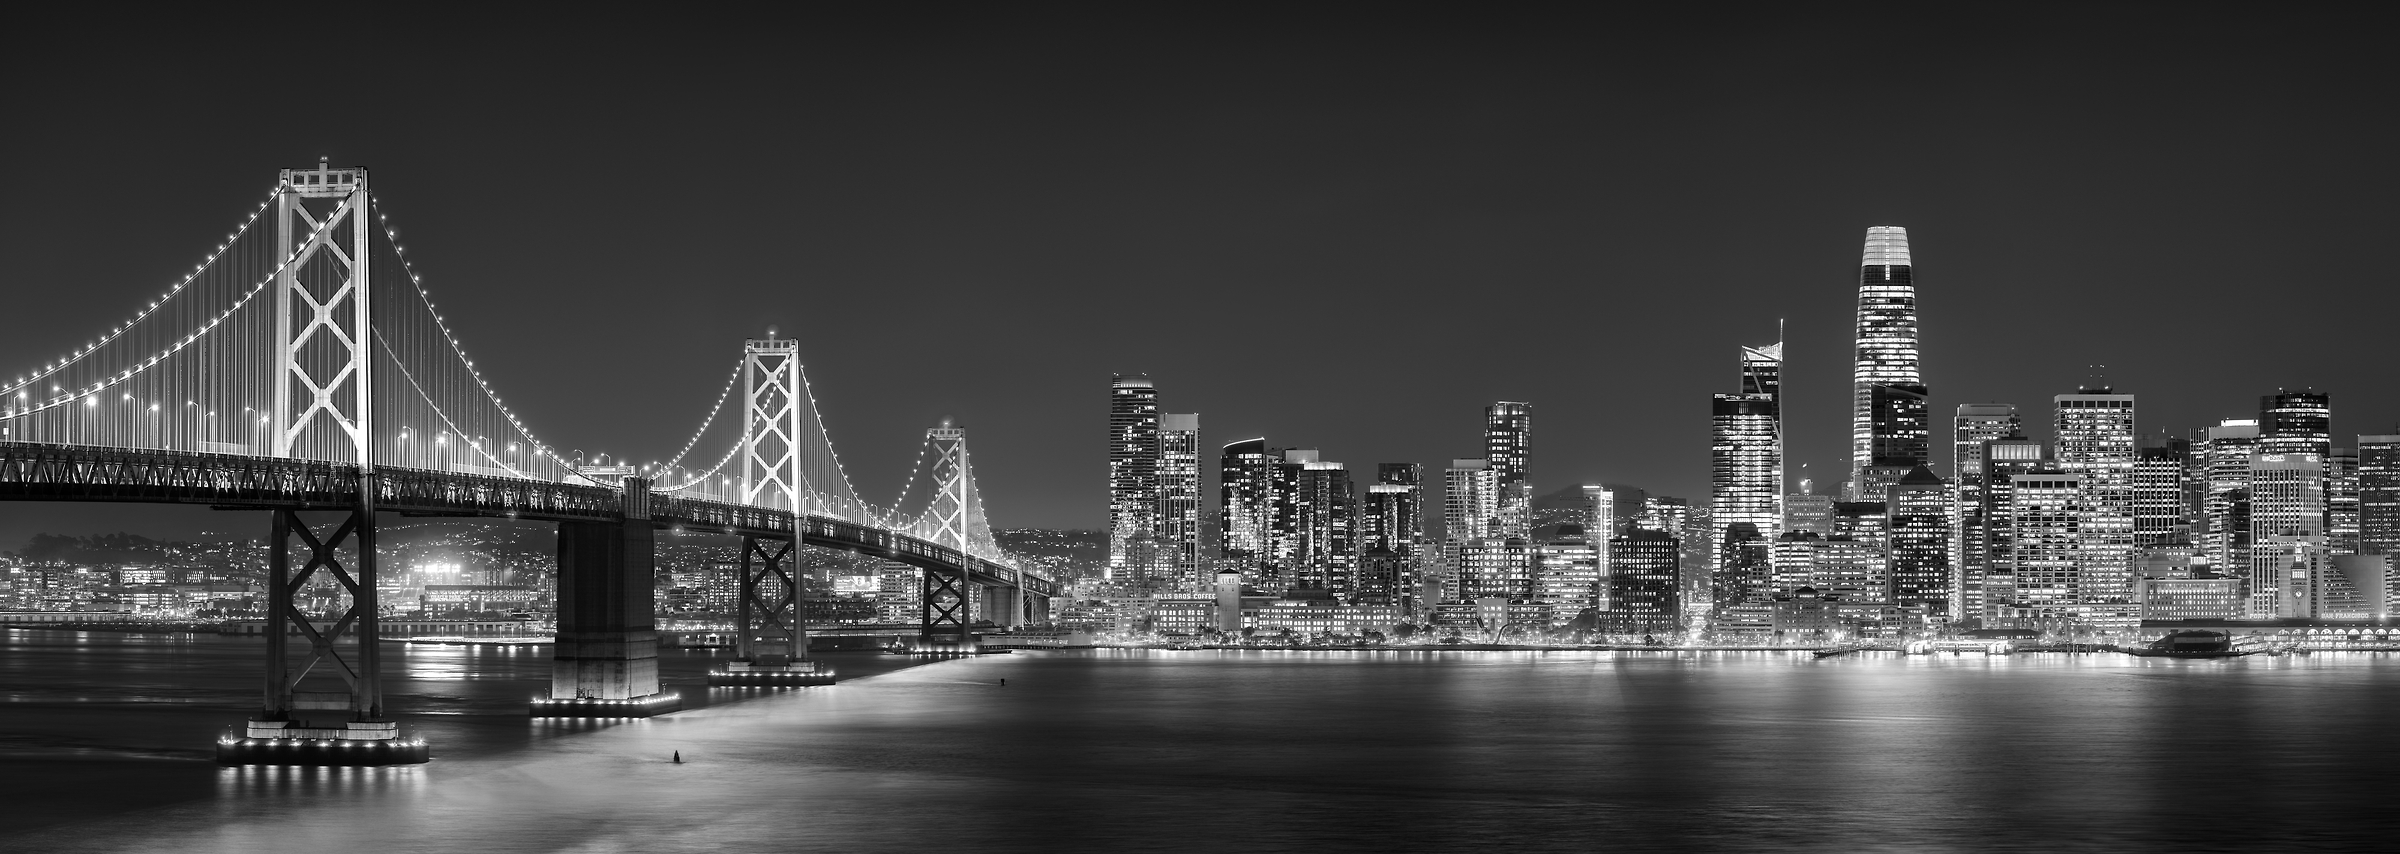 480 megapixels! A very high resolution, large-format VAST photo print of the San Francisco skyline and Bay Bridge at night; black & white cityscape skyline photograph created by Jim Tarpo in Yerba Buena Island and Treasure Island, San Francisco, California